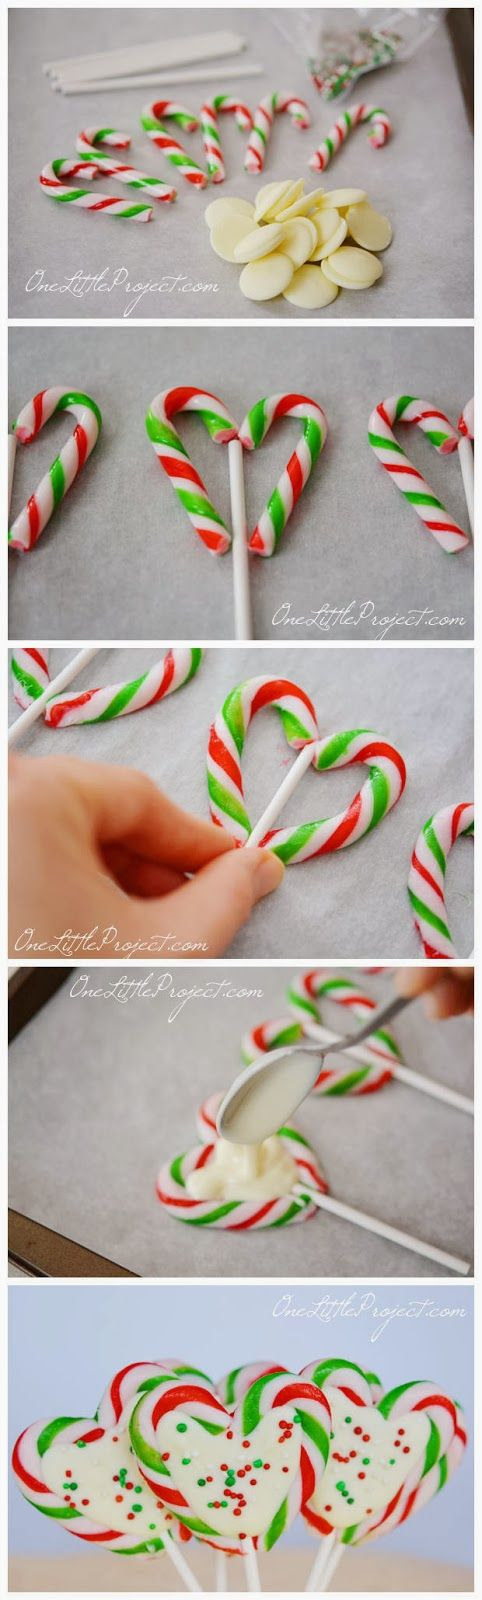 Candy Cane Hearts!